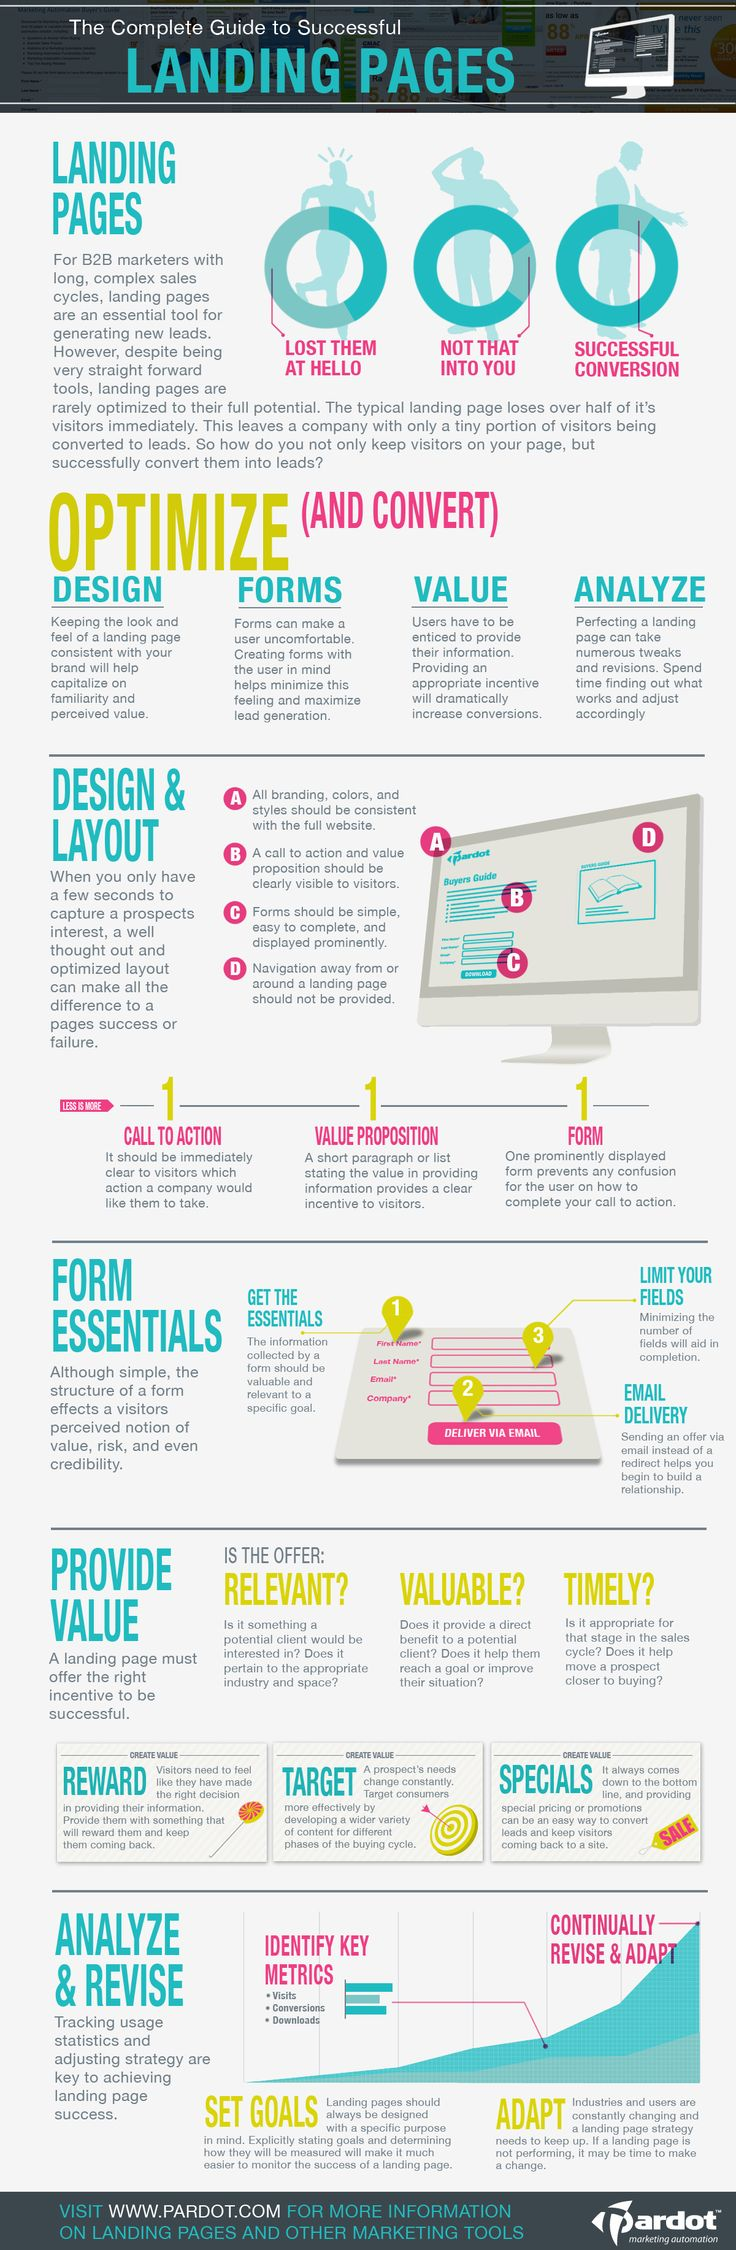 How To Make A Great Landing Page For Your Business Website